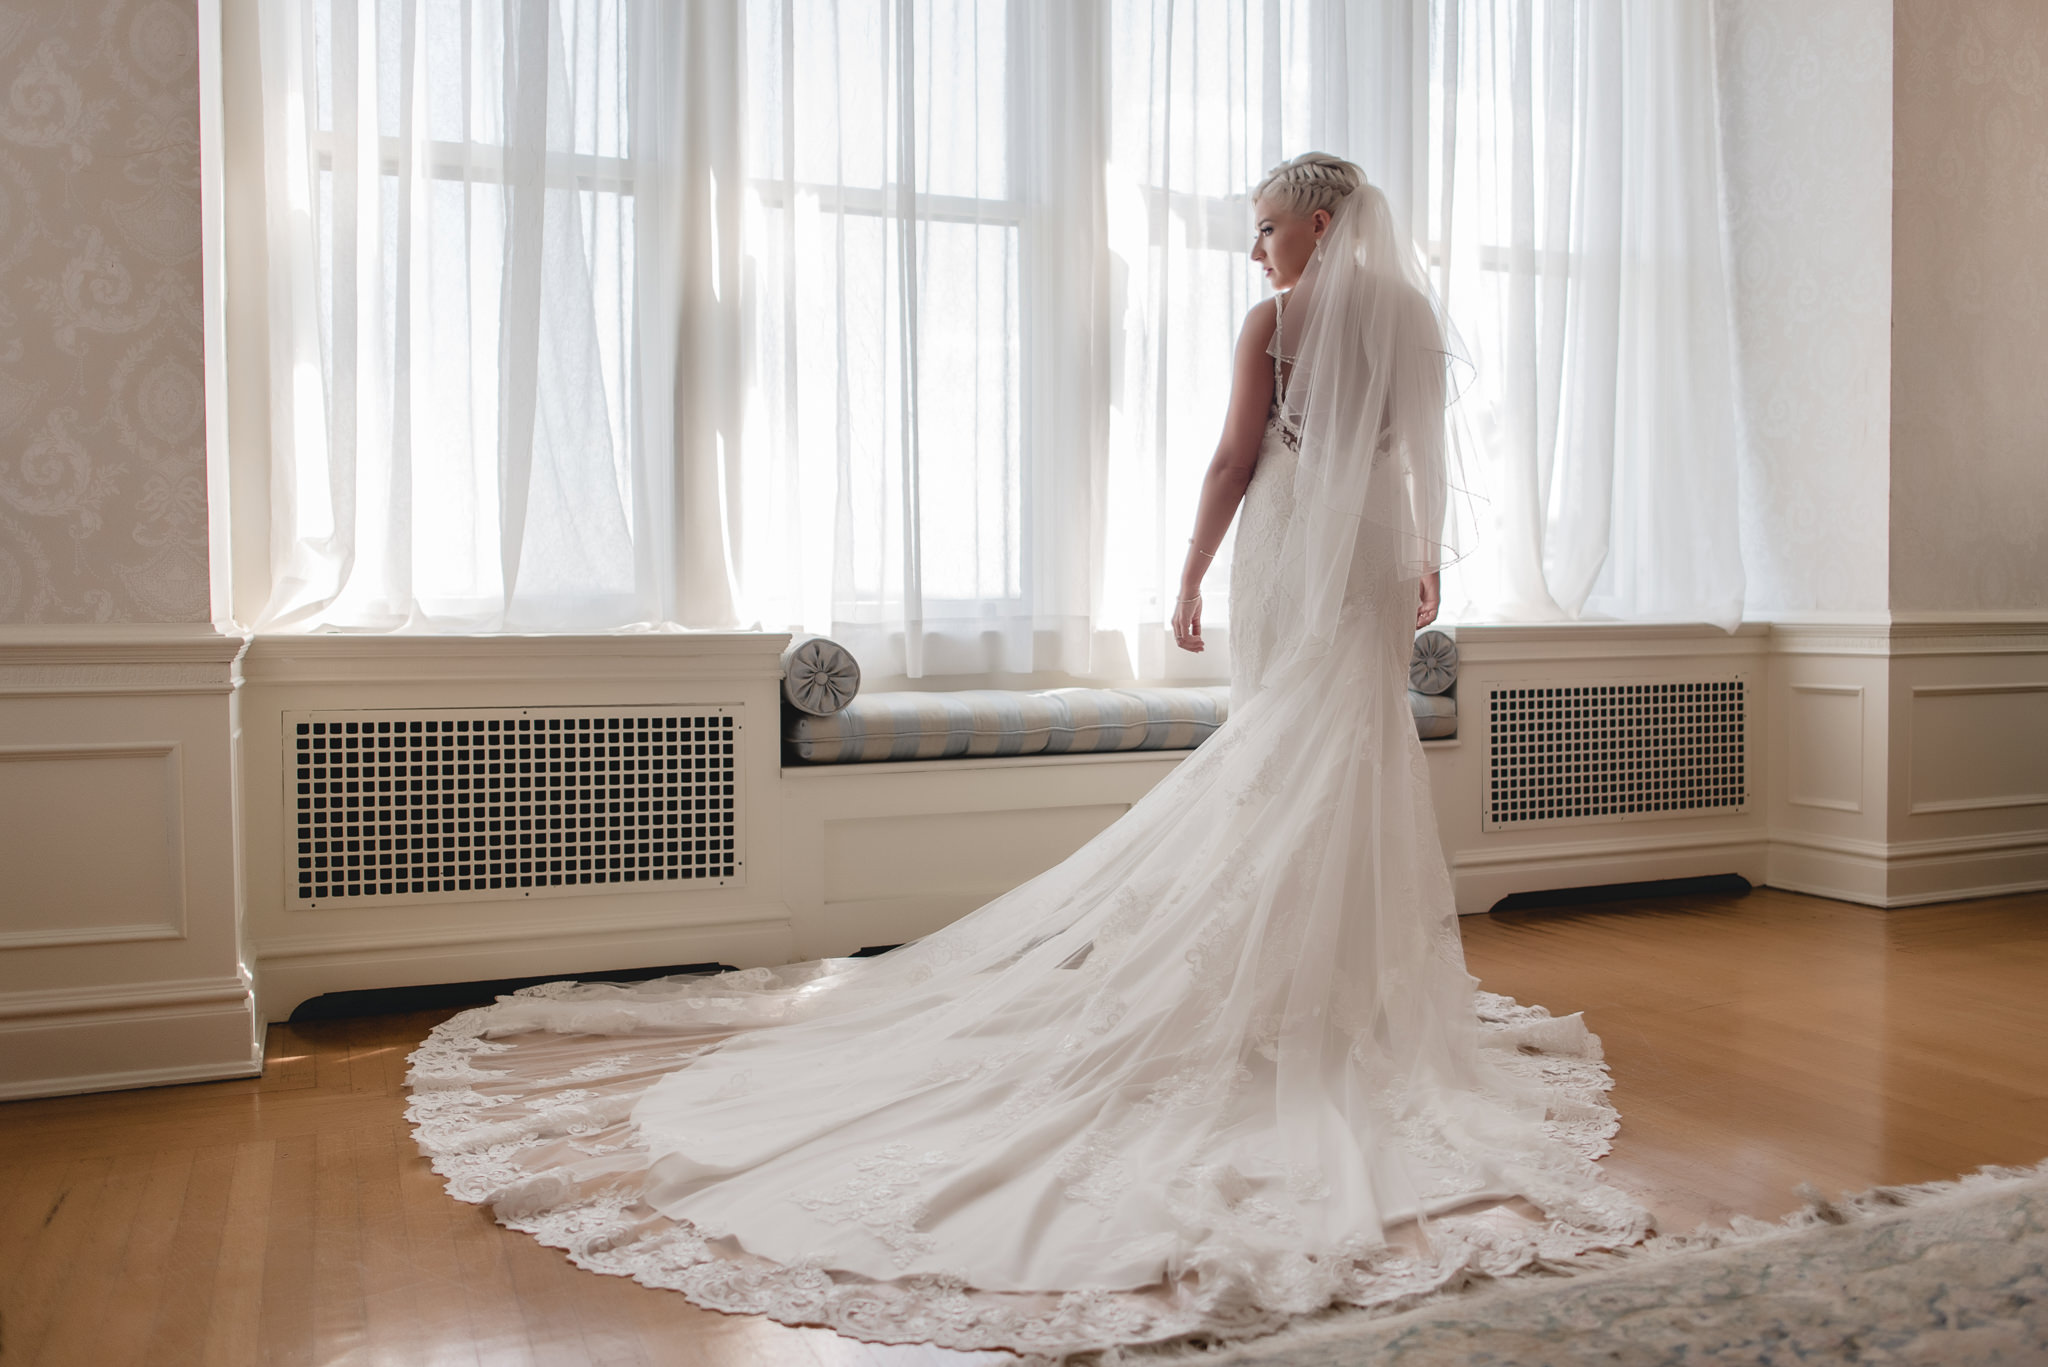 Full length photo of bride's train spread out on the floor